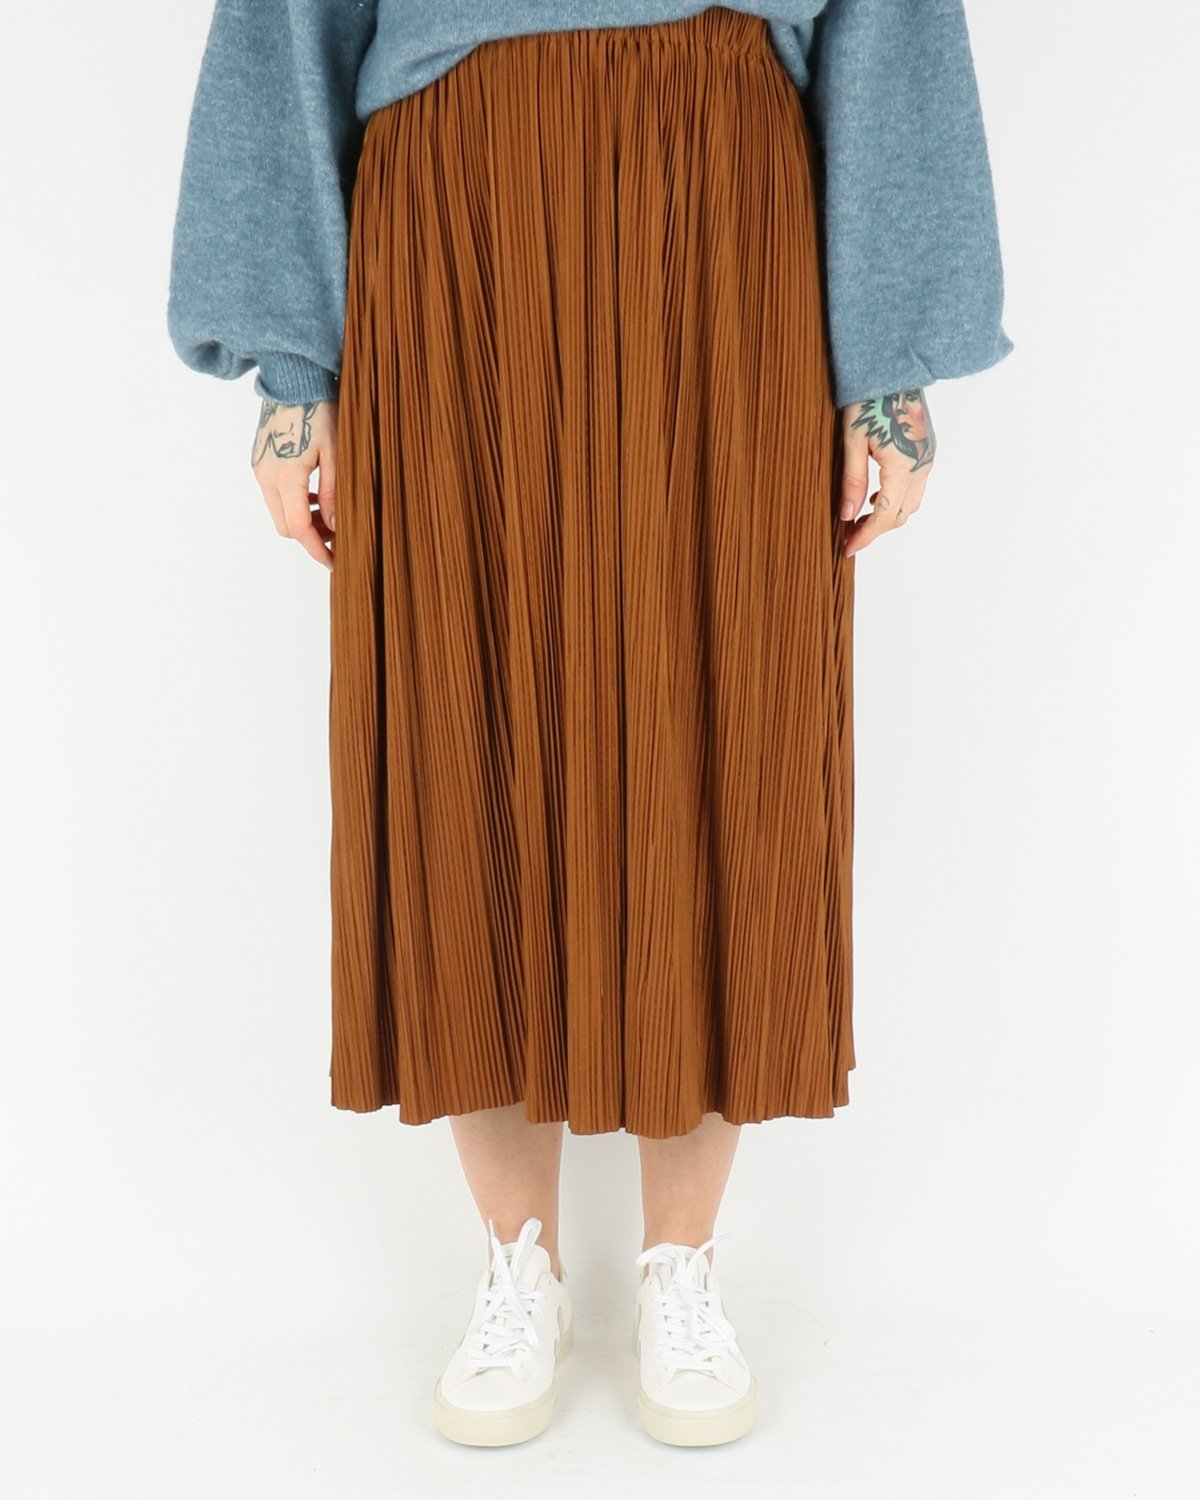 samsoe samsoe_uma skirt_monks robe_1_3